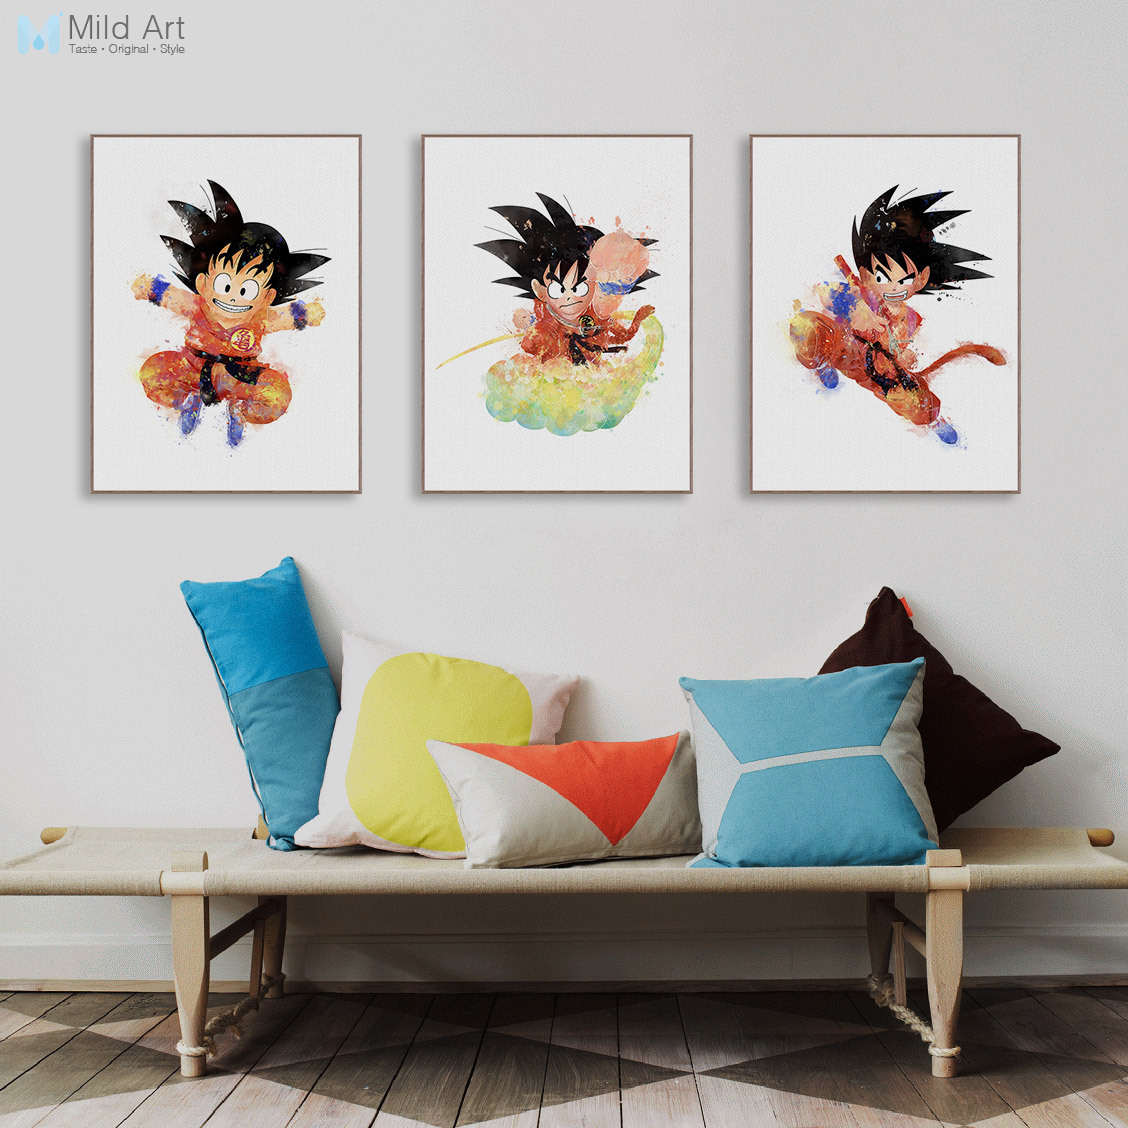 Buy Triptych Modern Watercolor Canvas A4